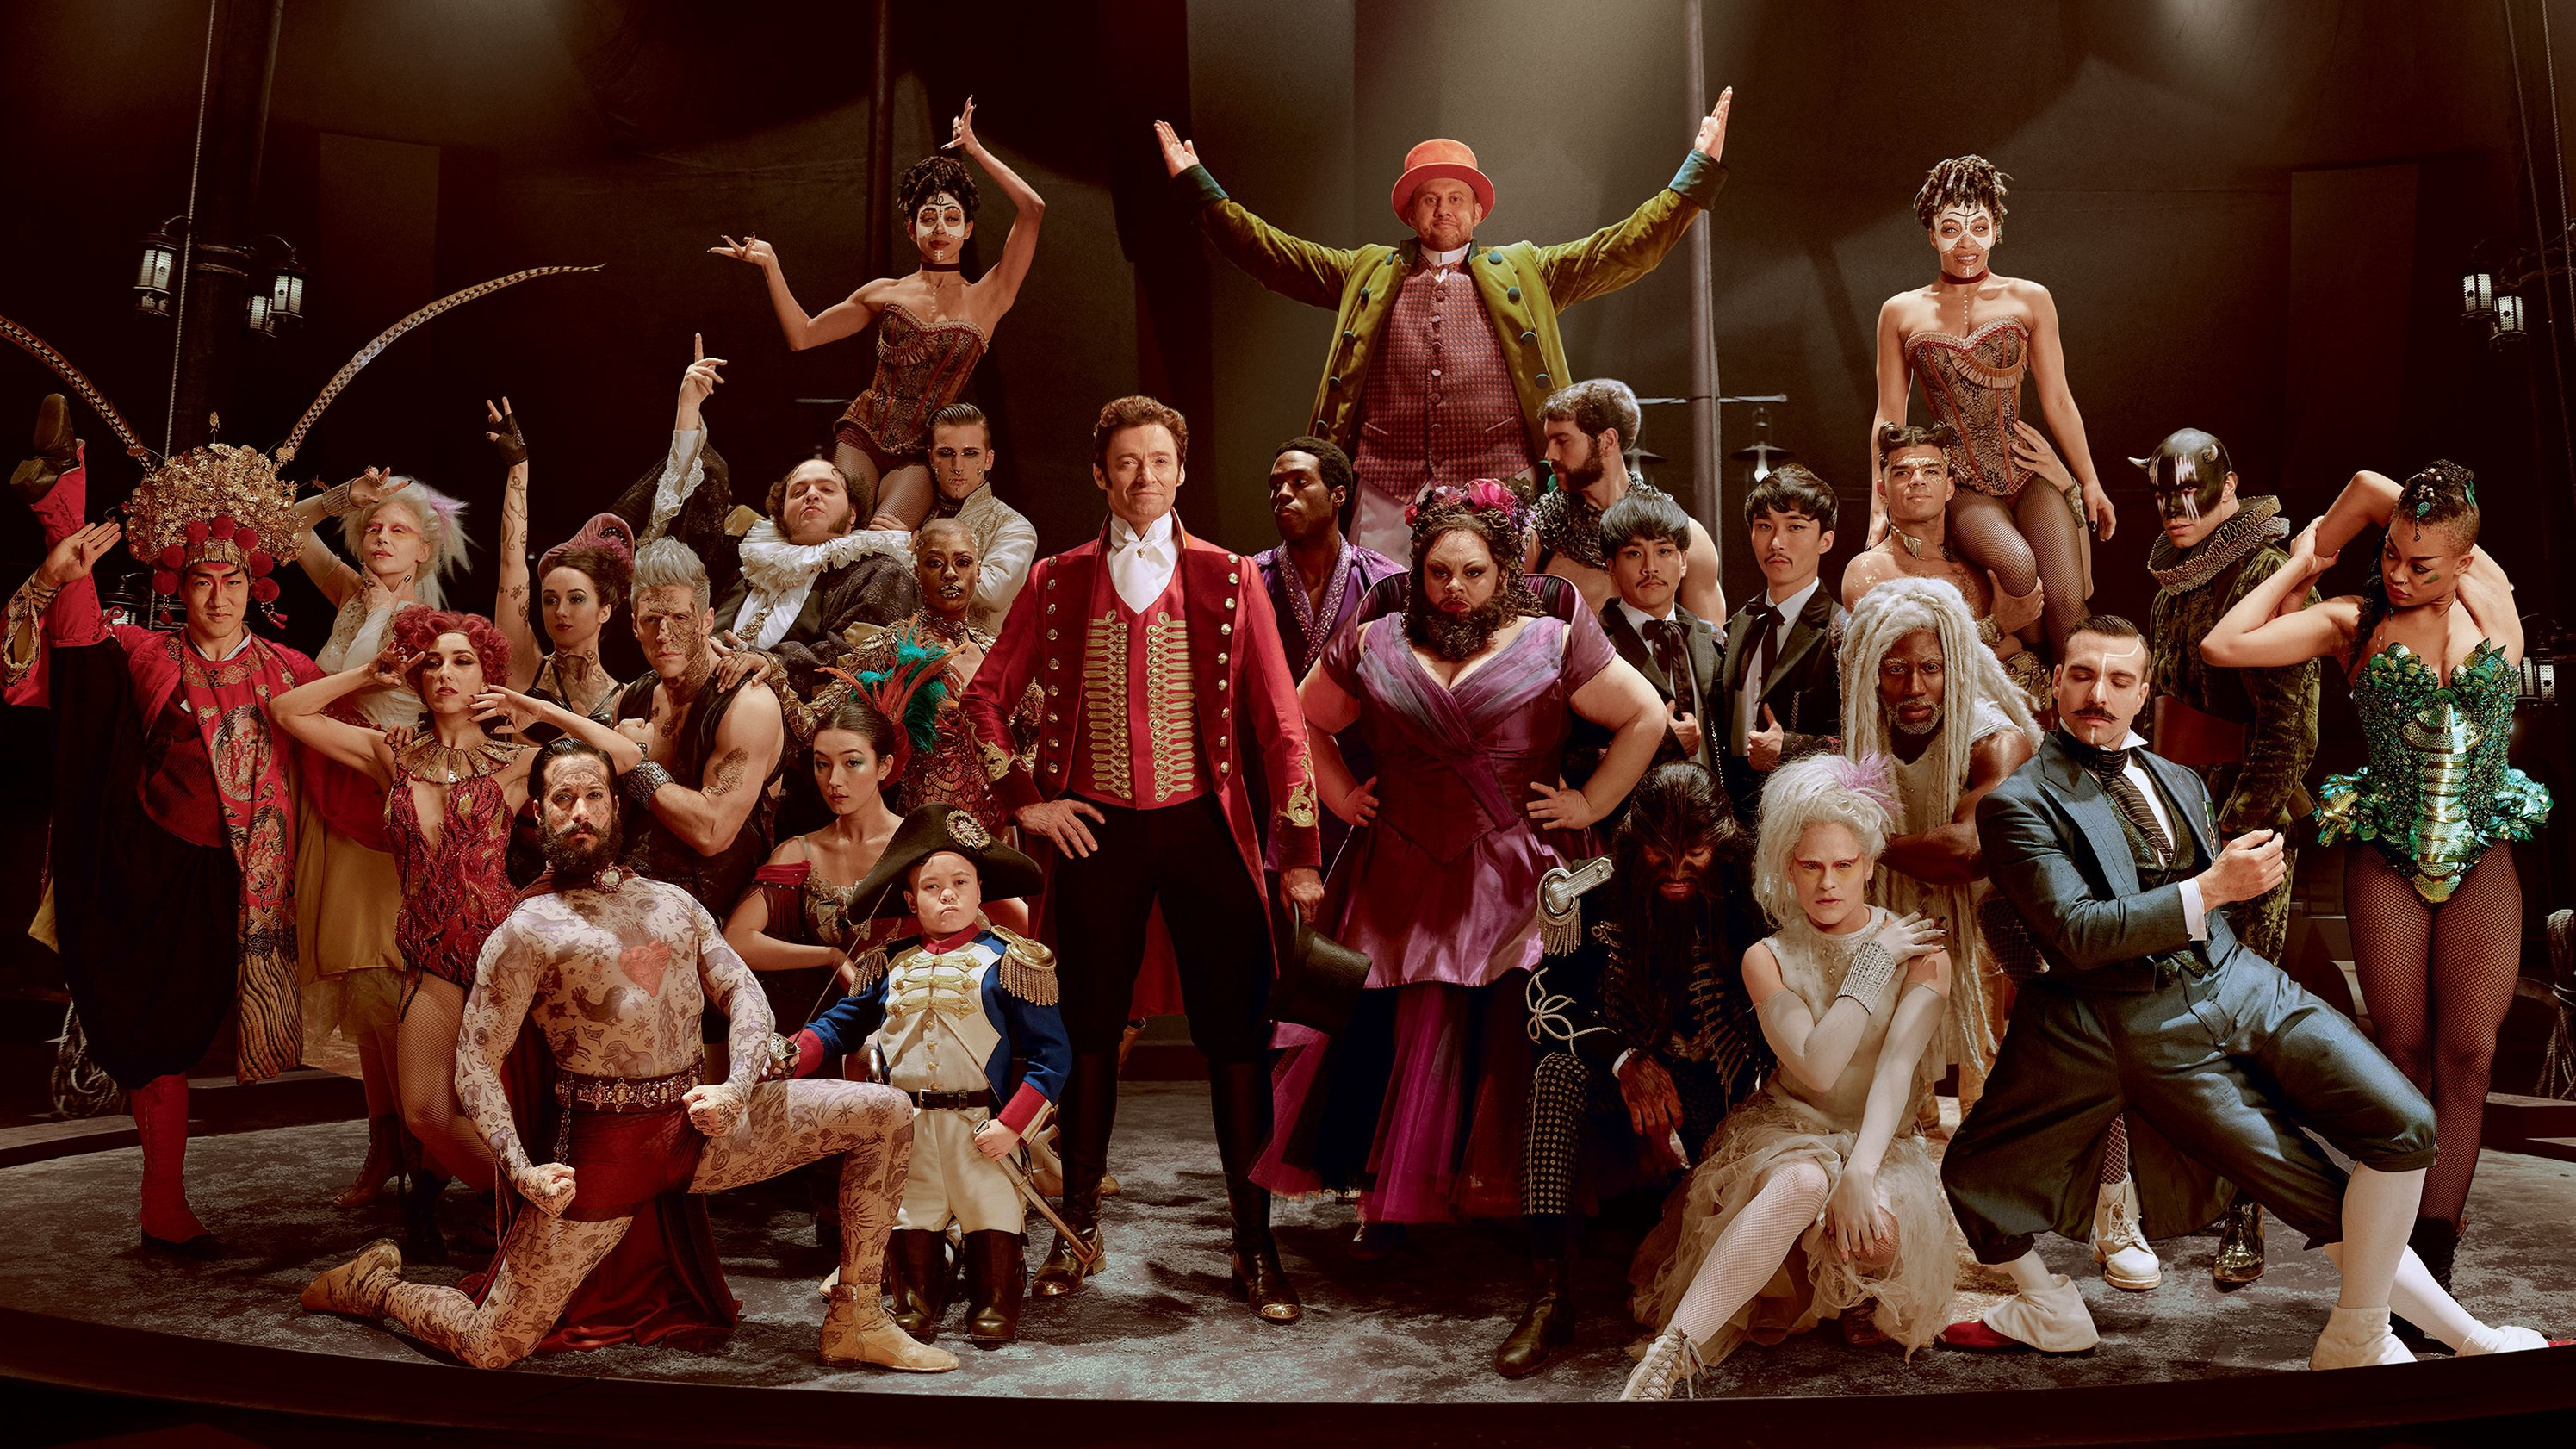 10 Greatest Things We Can Learn From The Greatest Showman